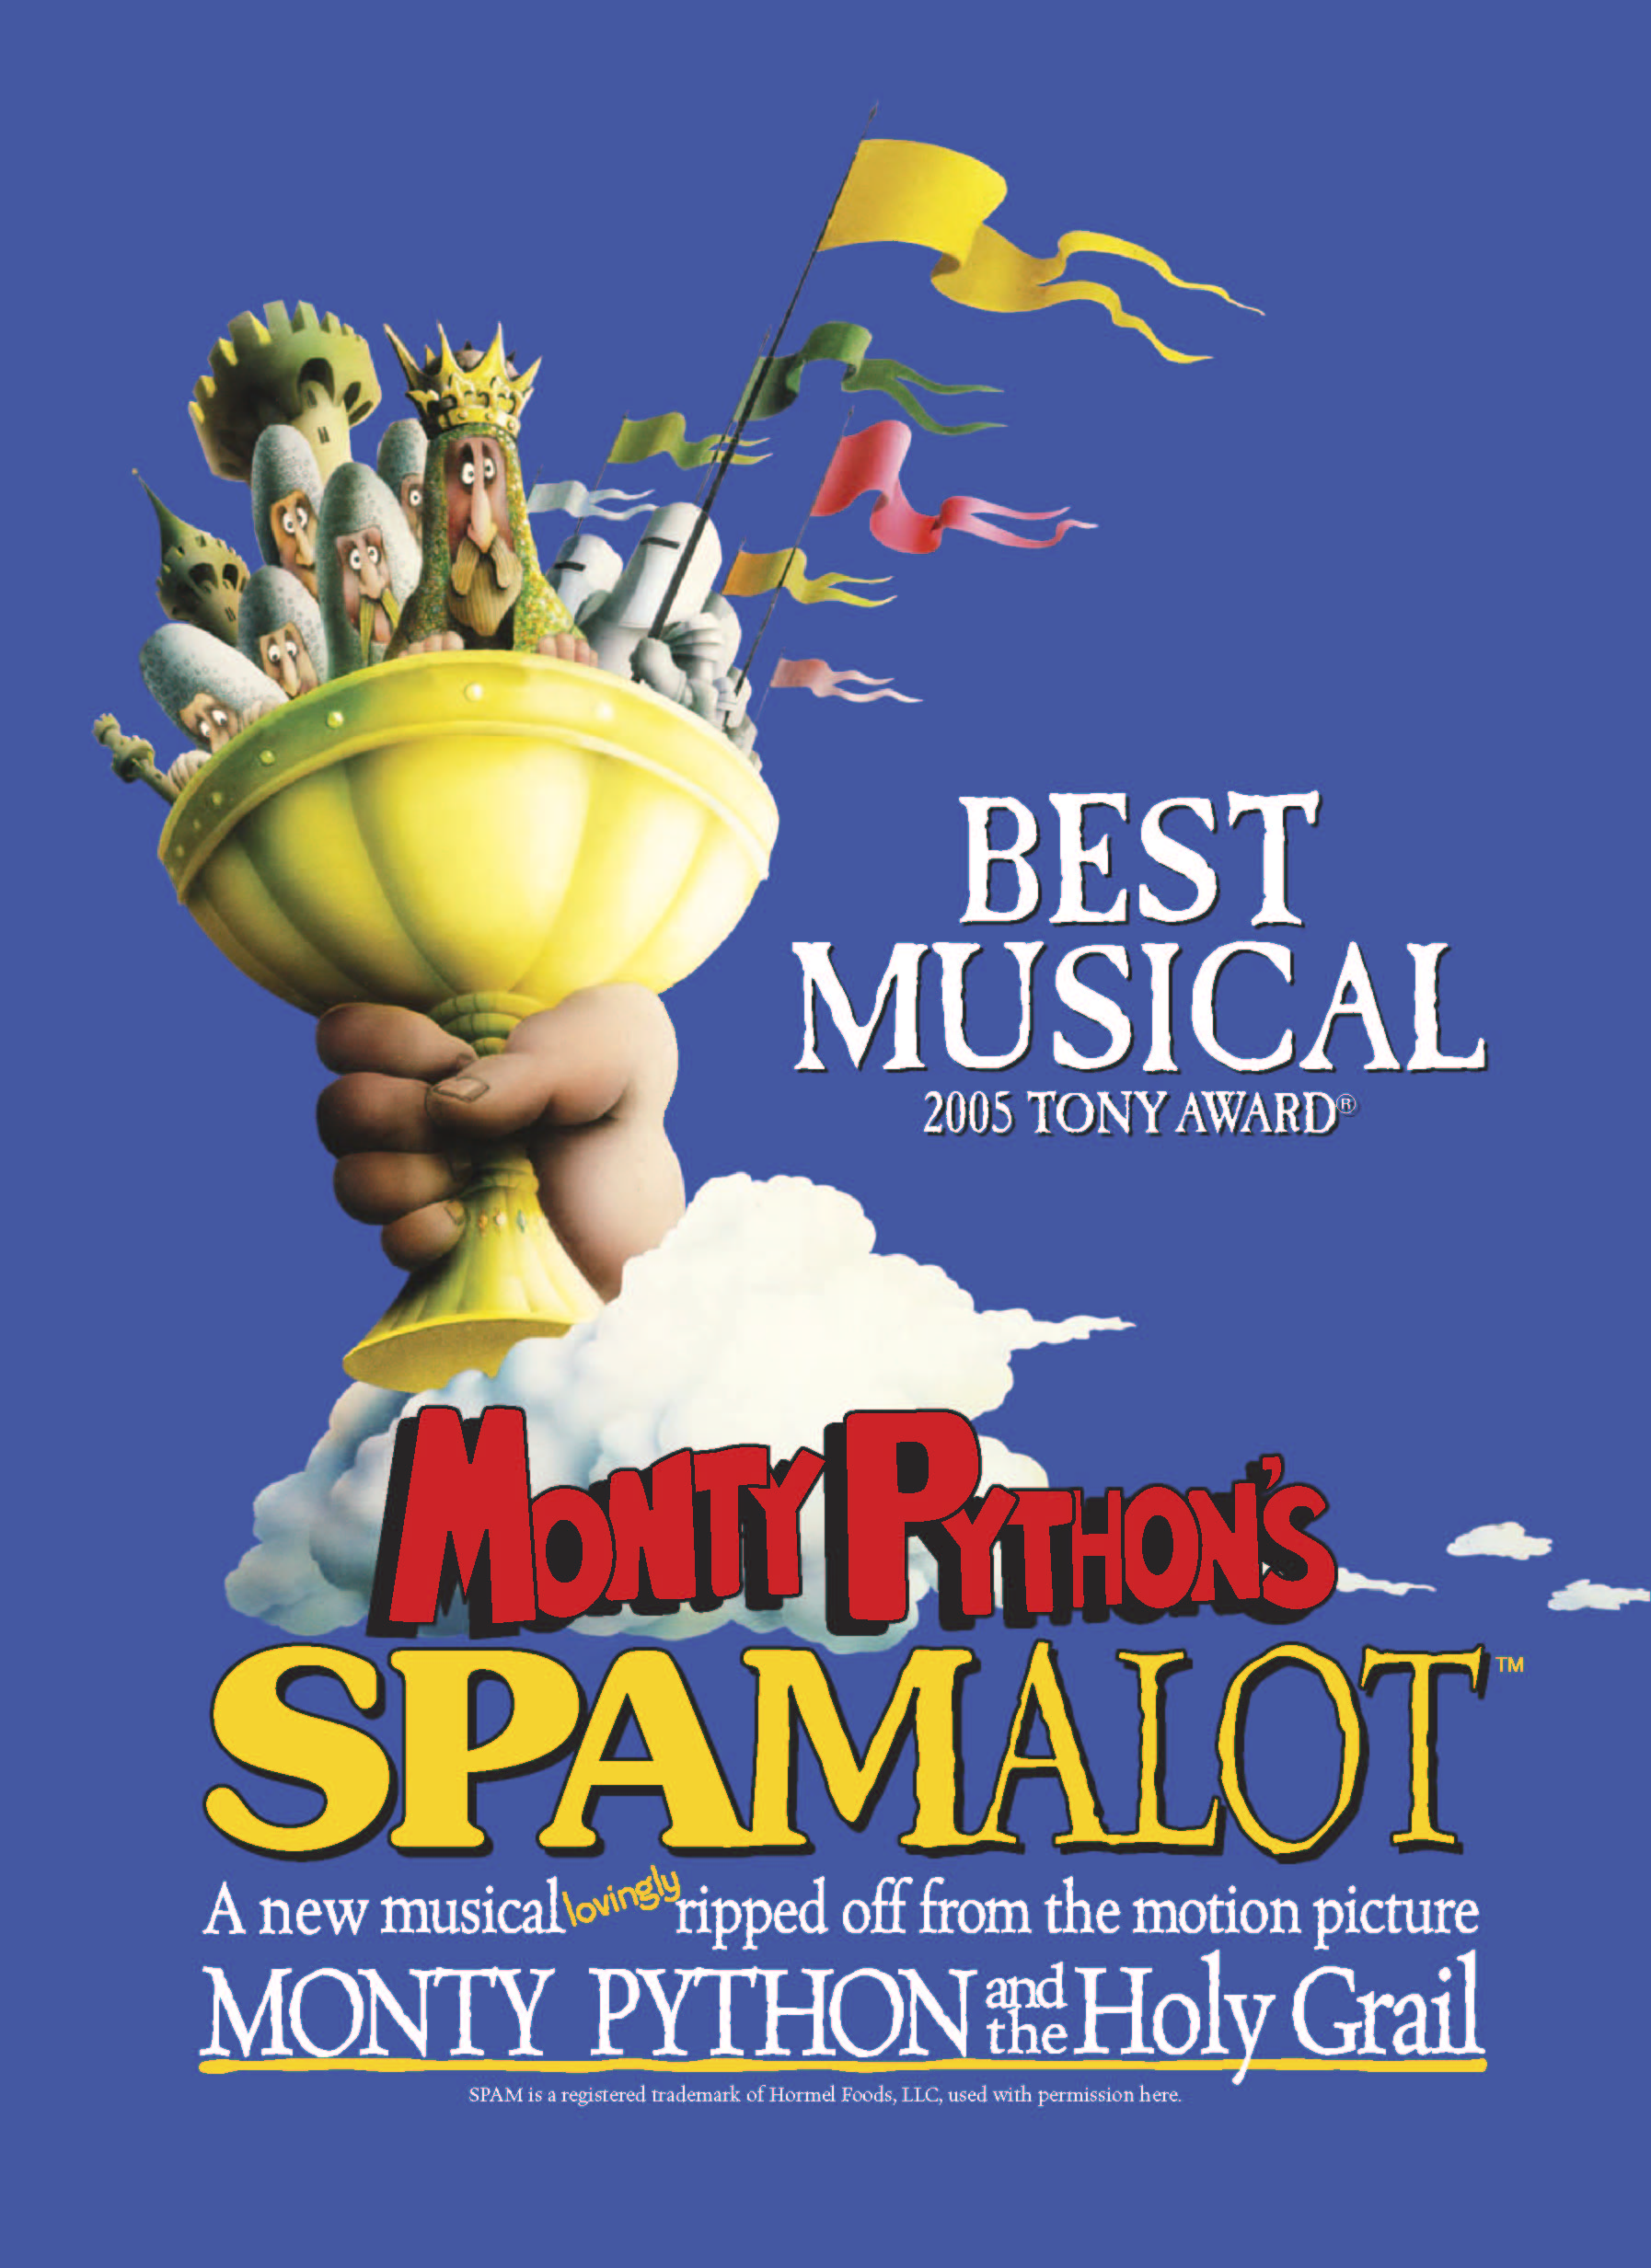 Spamalot will be at The Playhouse Oct. 14-15